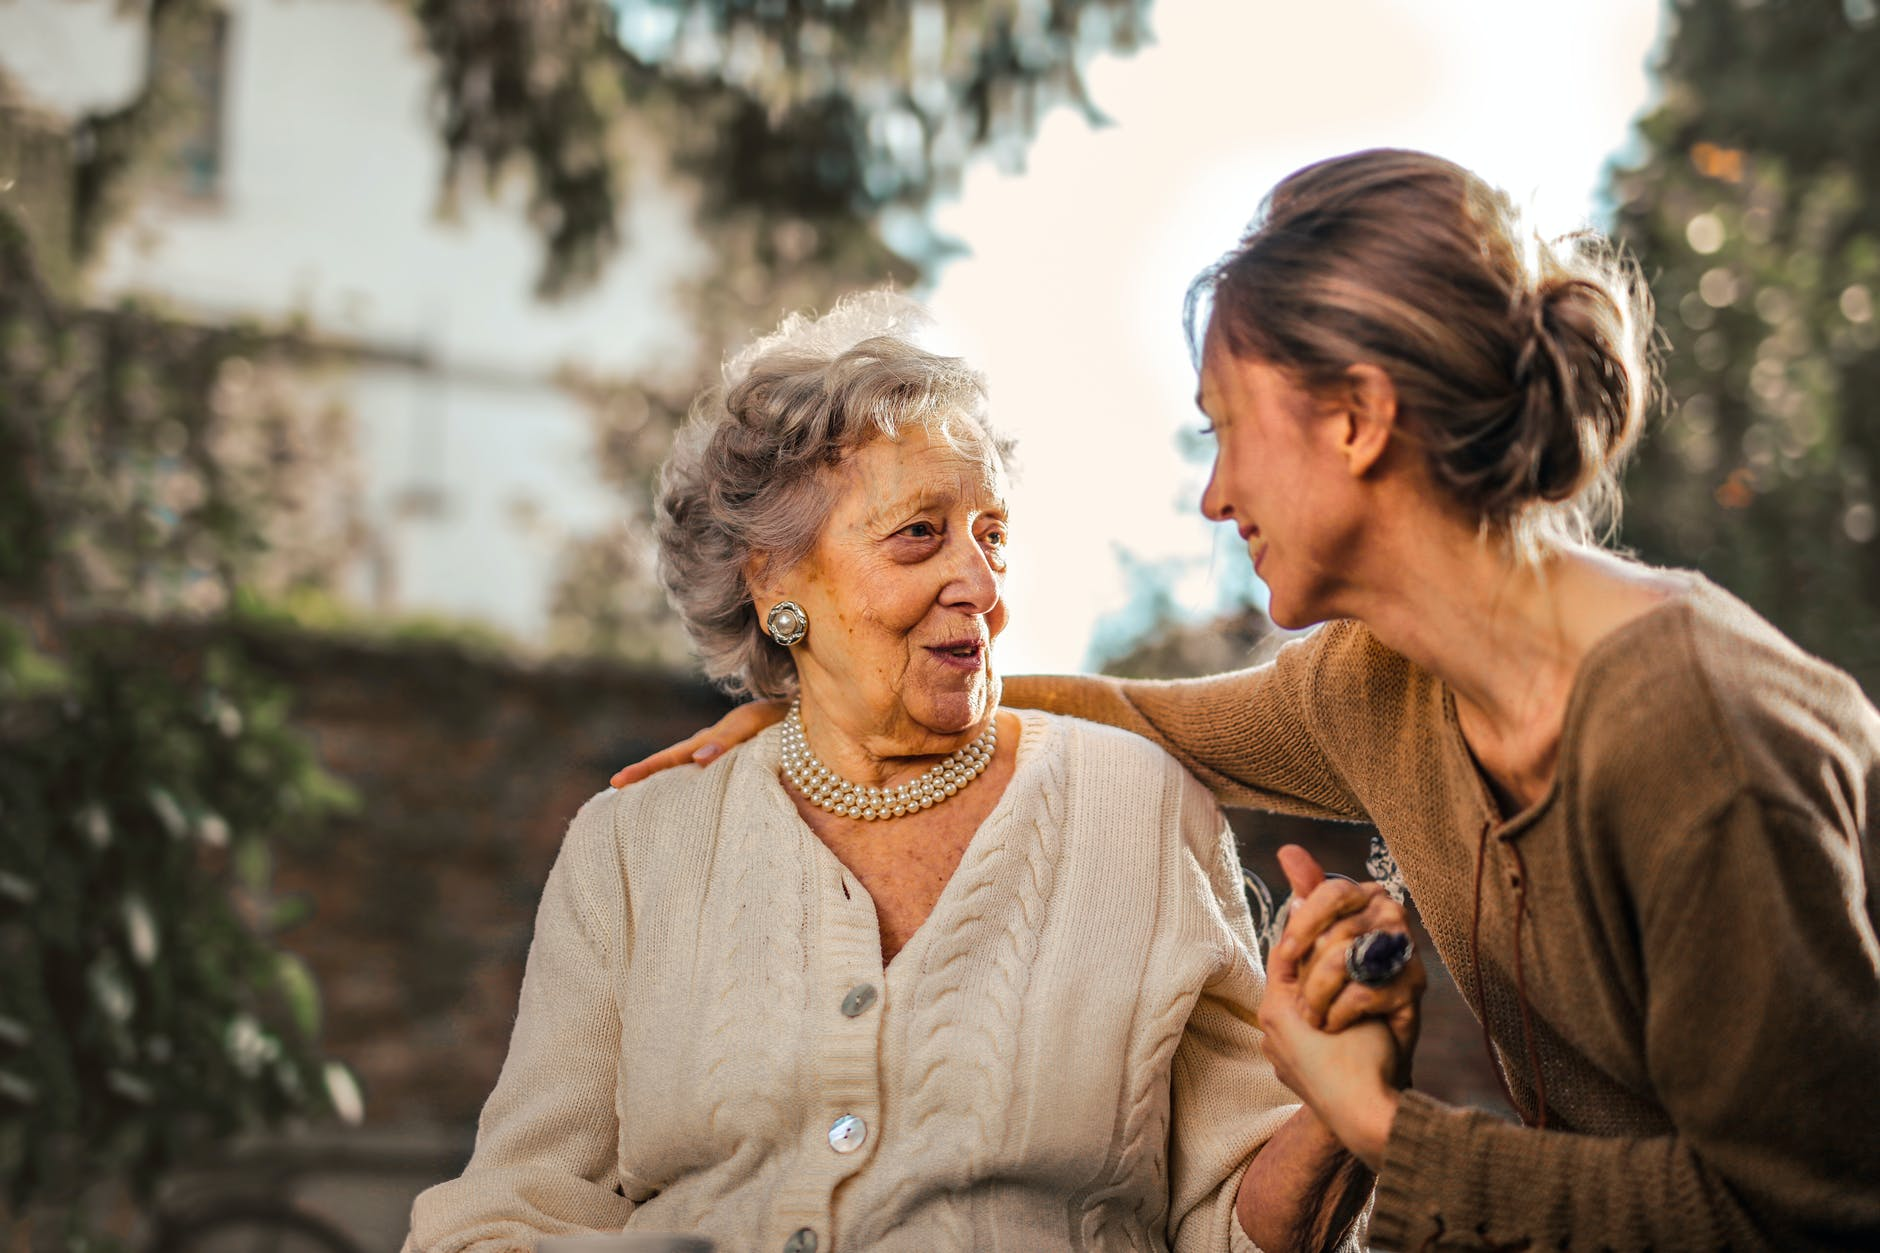 4 reasons you need to take care of your parents in their old age